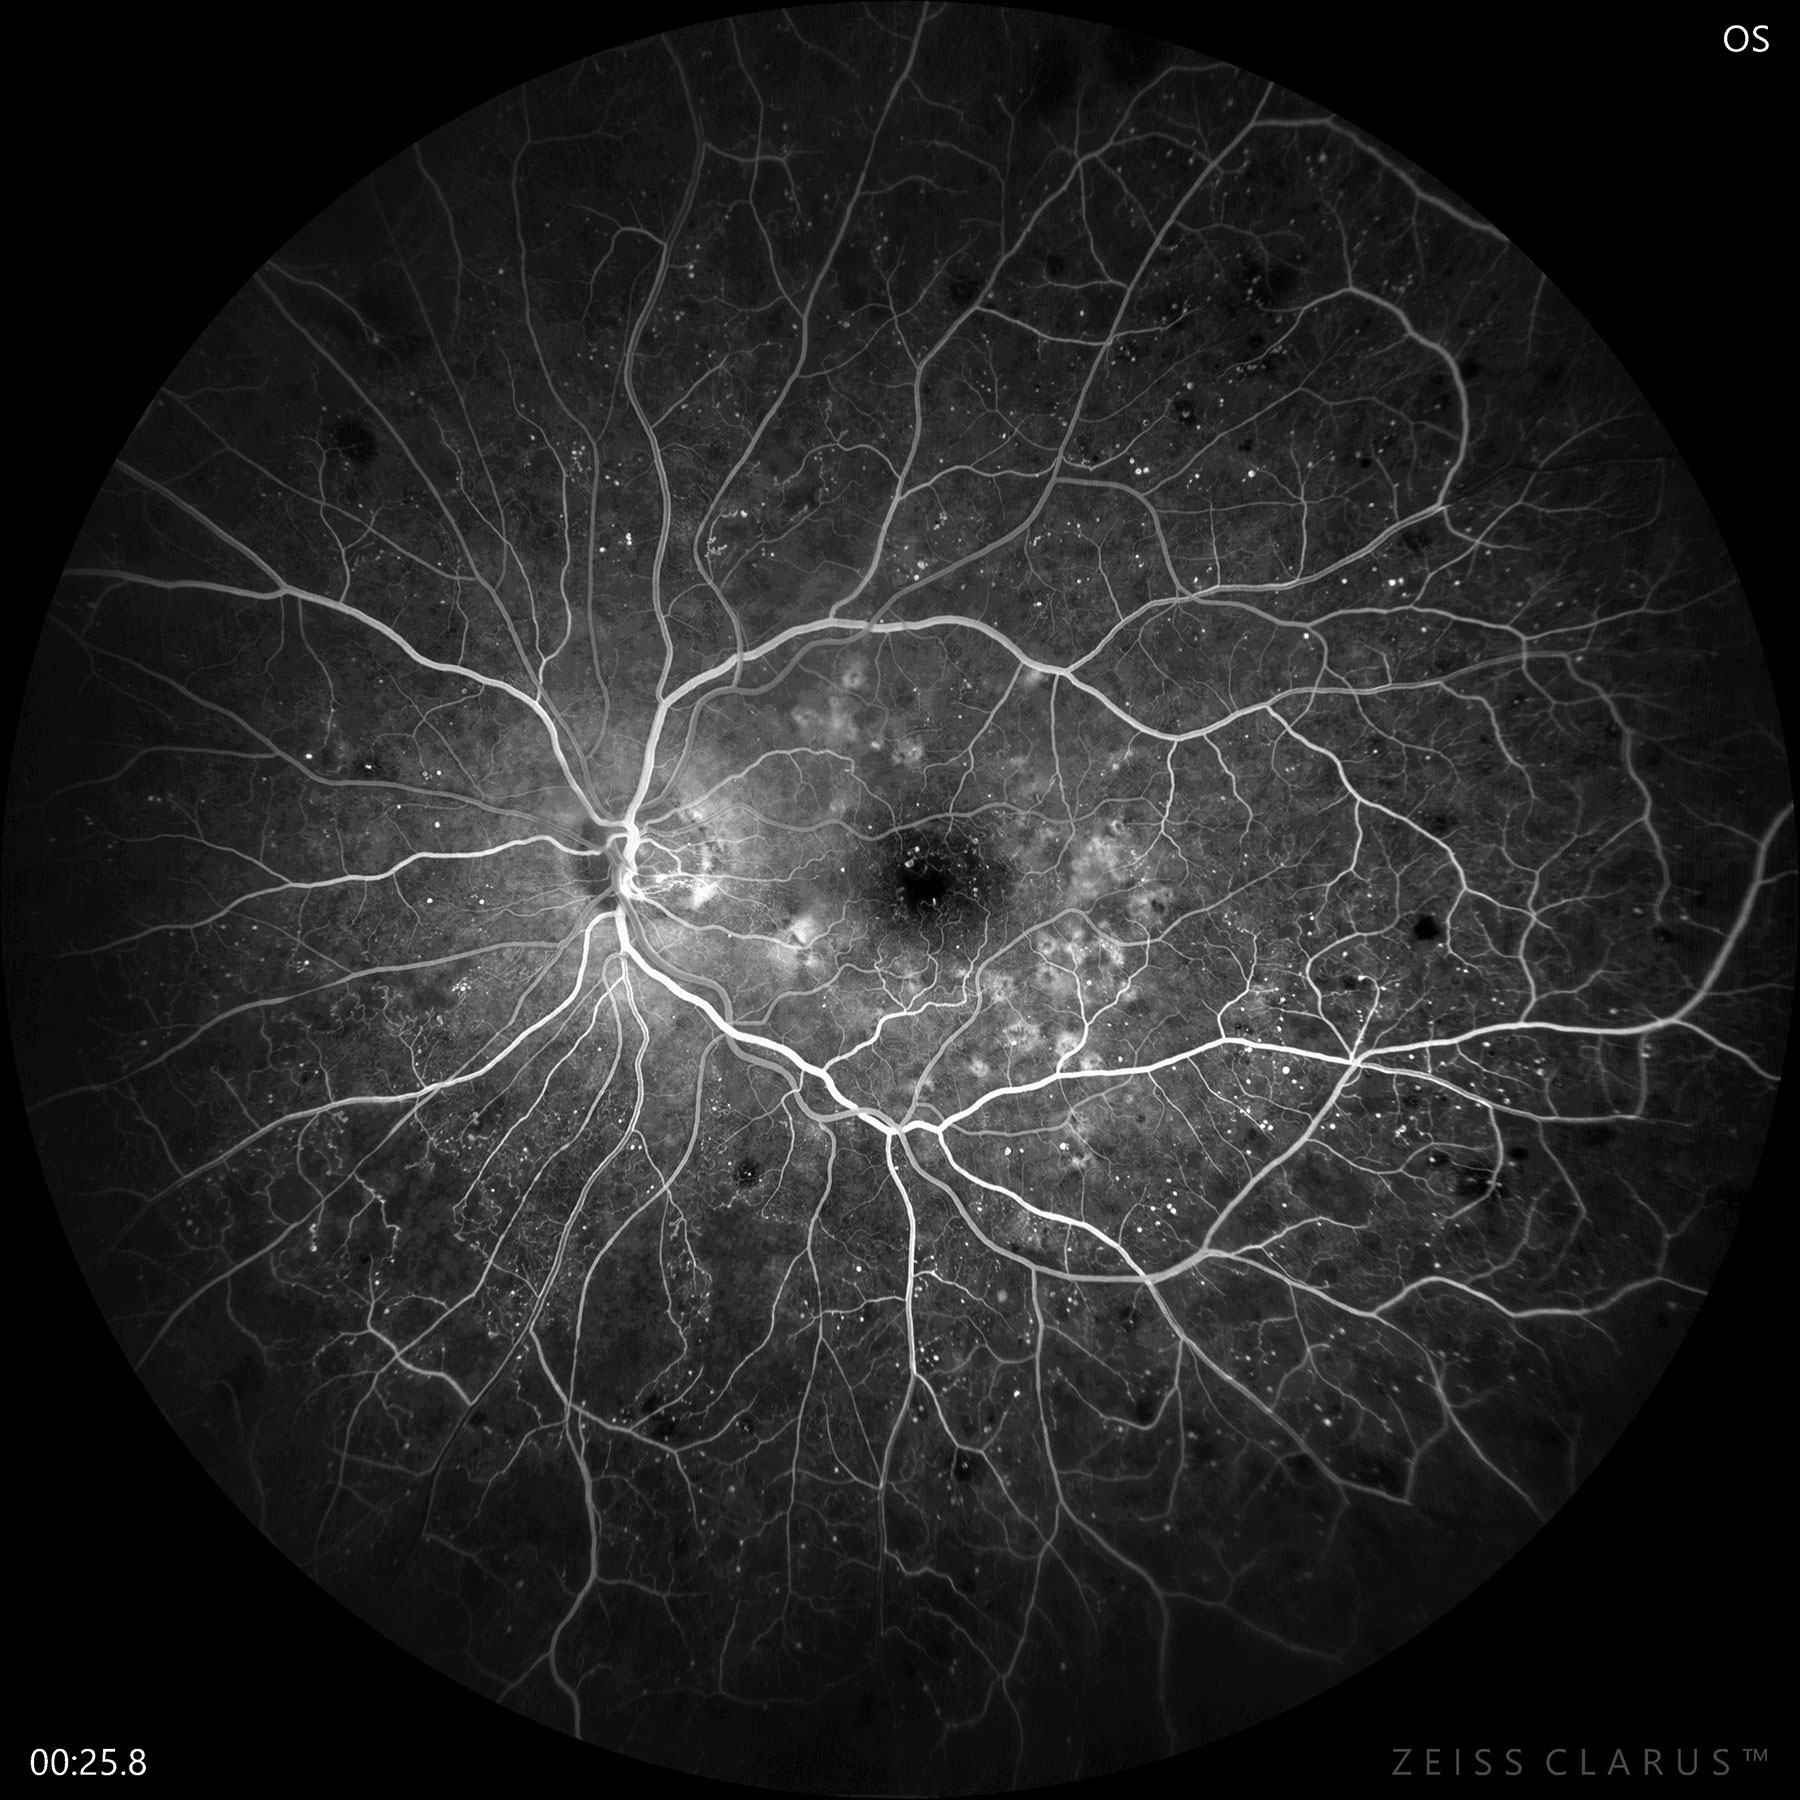 Fluorescein angiography confirms early PDR with significant non-perfusion and neovascularization of the disc.